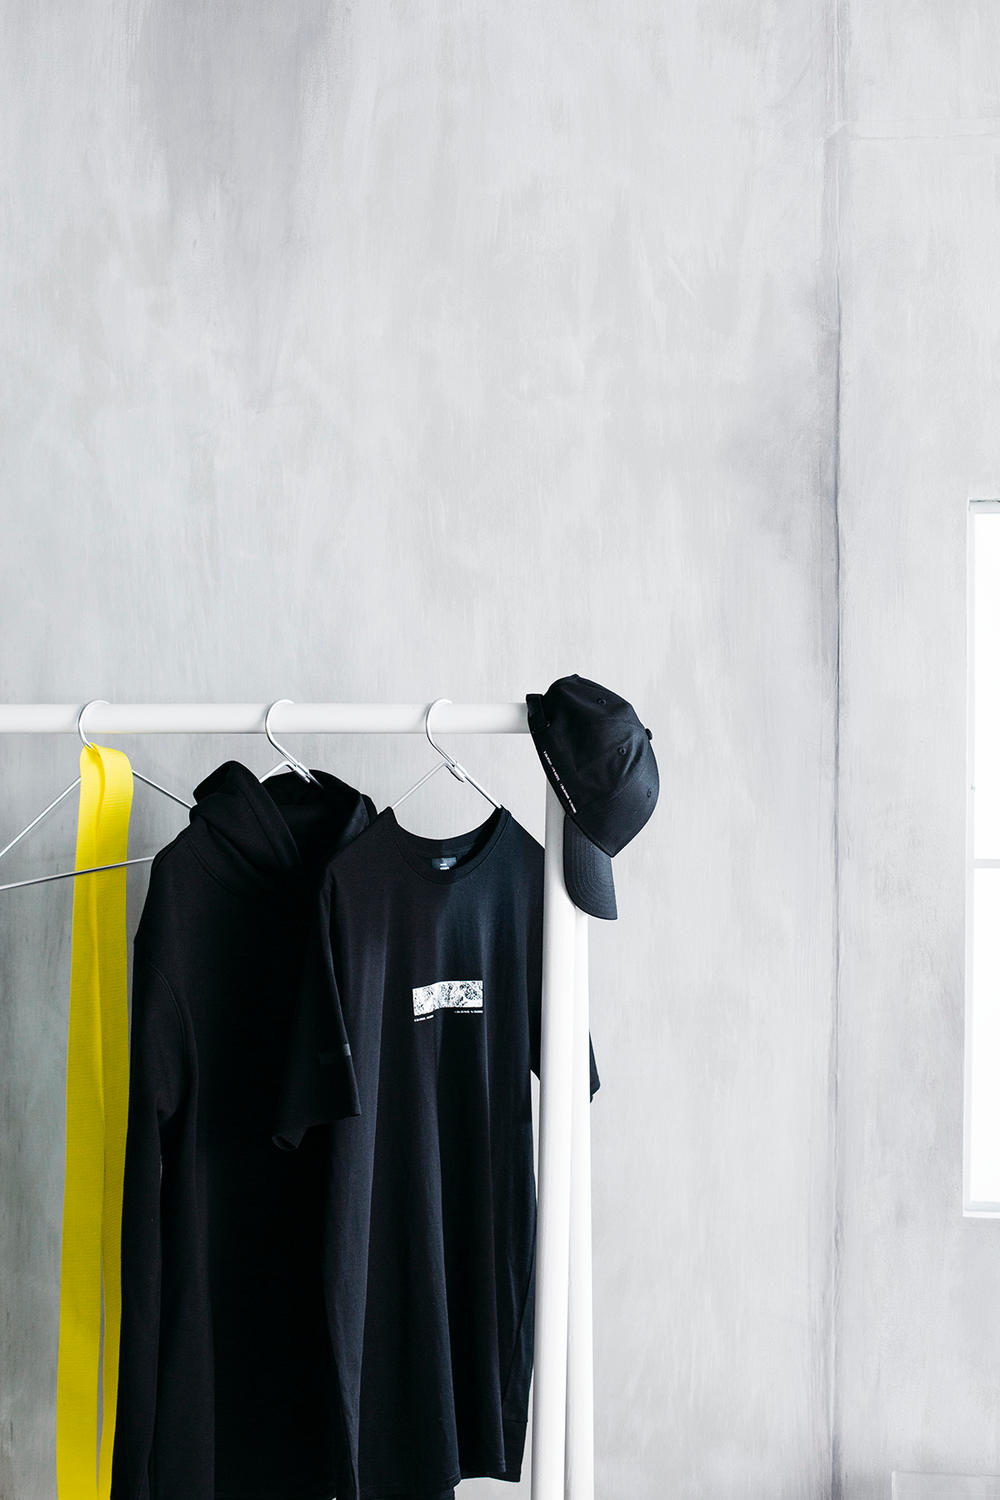 Stampd ikea chris stamp SPÄNST collaborative collection furniture hat skateboard basketball hoop desk table stand armchair wardrobe light sticks duffel bag clothes rack box cushion cover water bottle travel towel noticeboard